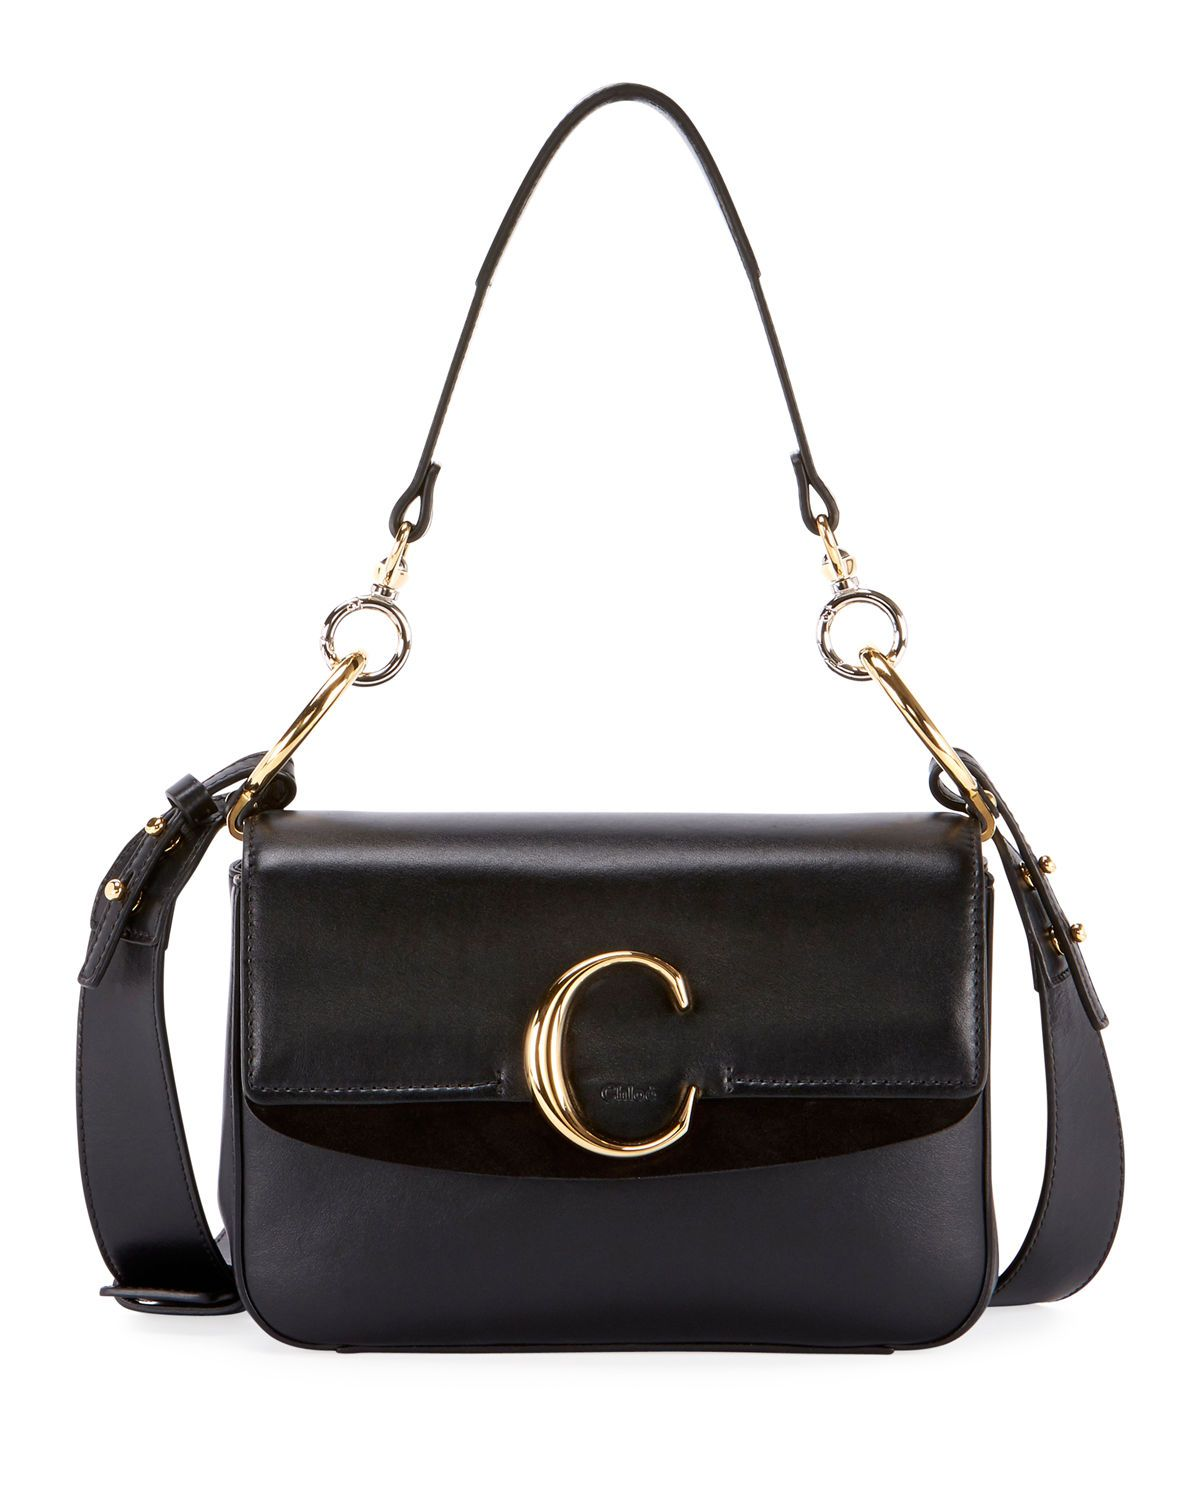 shop-chloe-c-black-shiny-leather-small-shoulder-bag